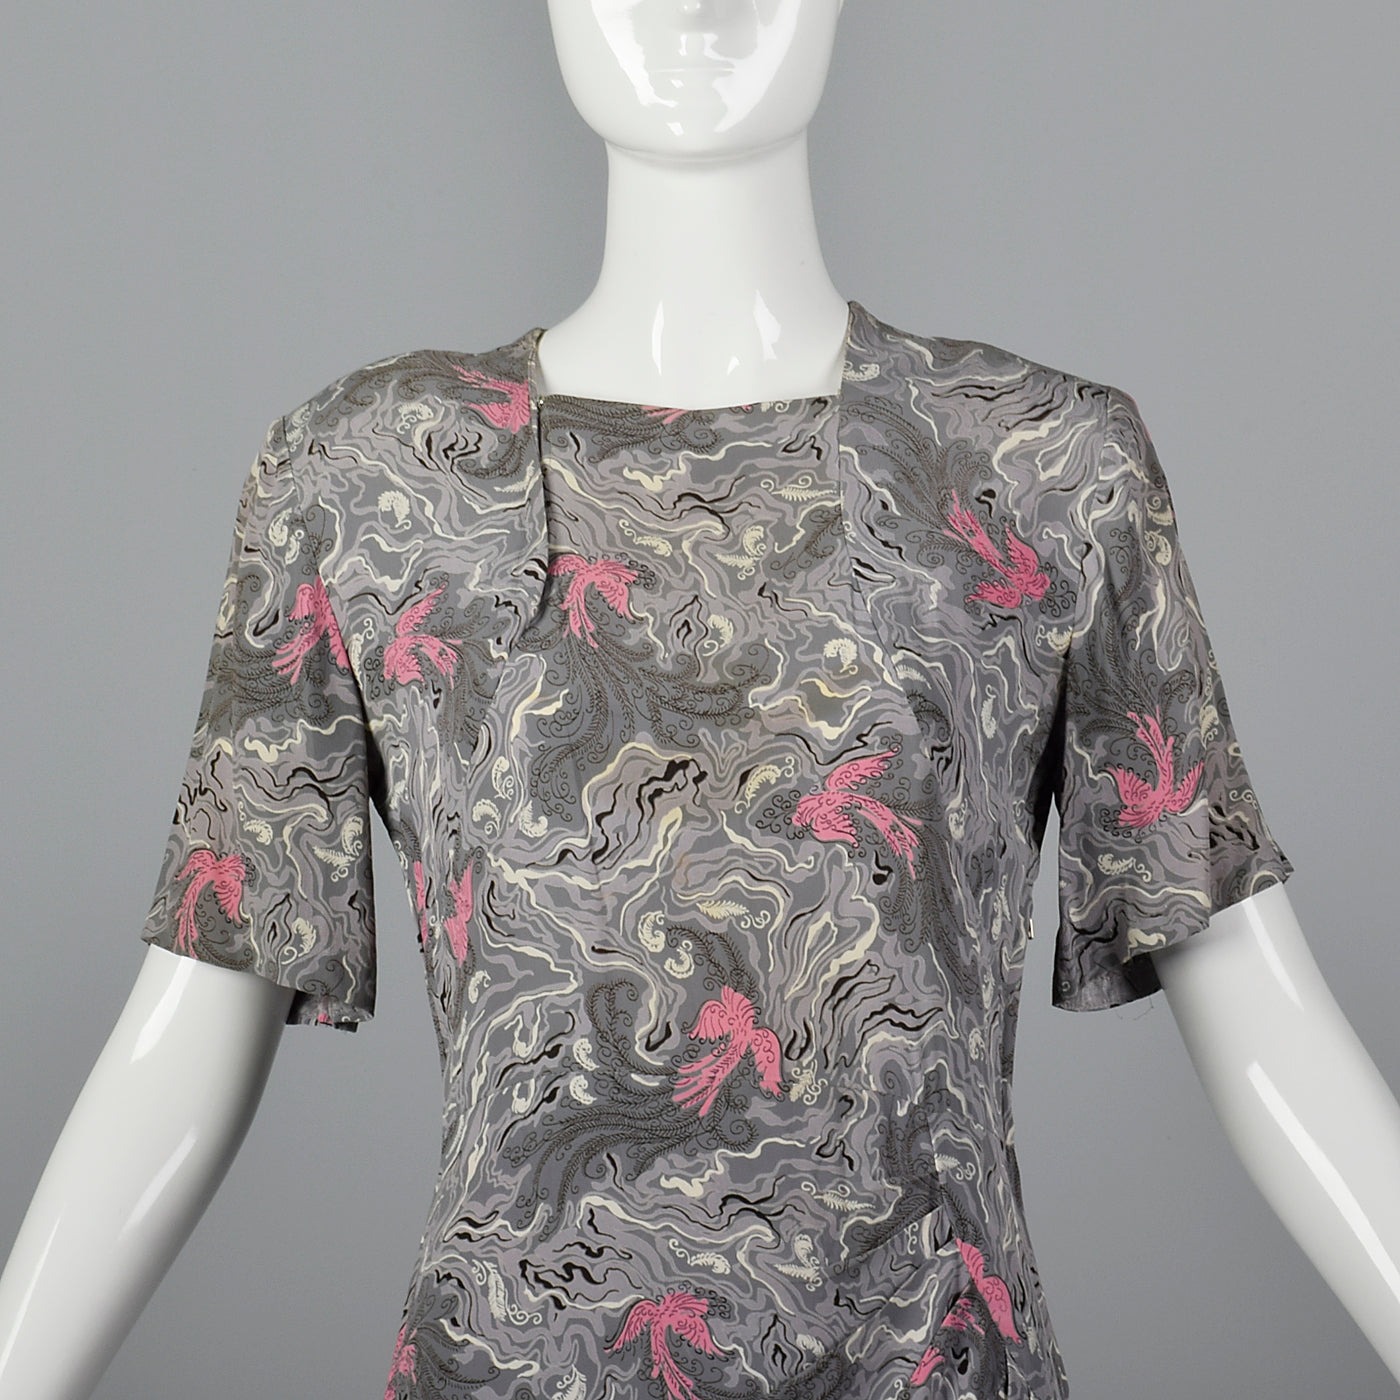 1940s Novelty Print Rayon Dress Gray Swirl with Birds